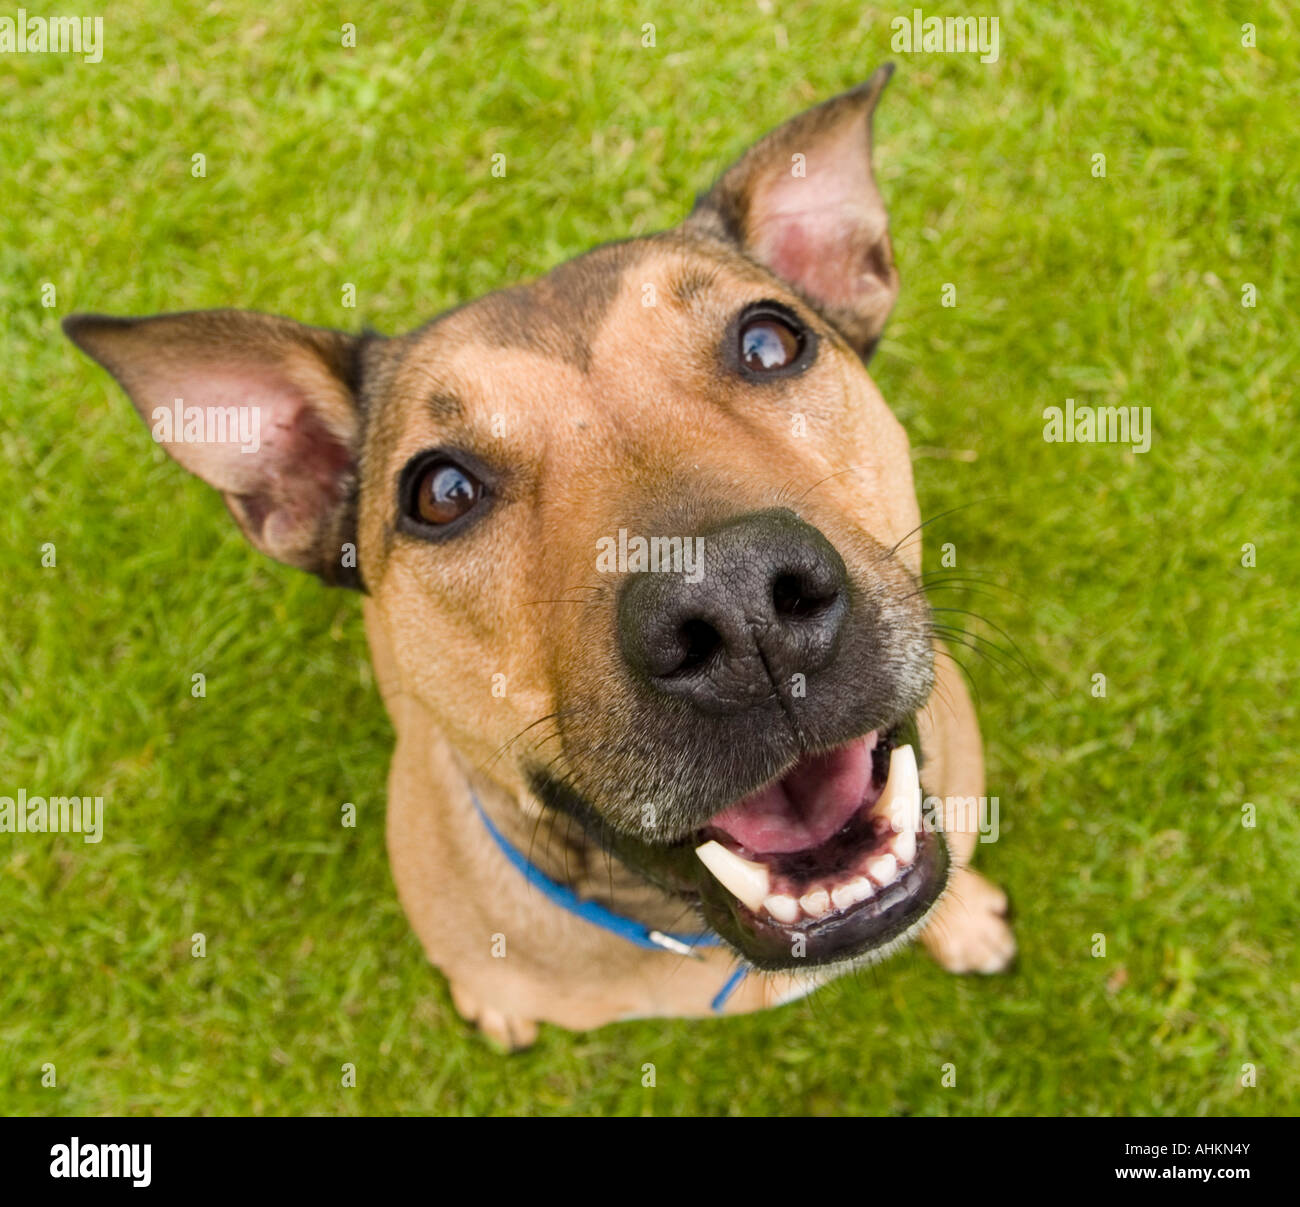 A alert and excited brown dog waits open mouthed as it looks up at the camera - Stock Image